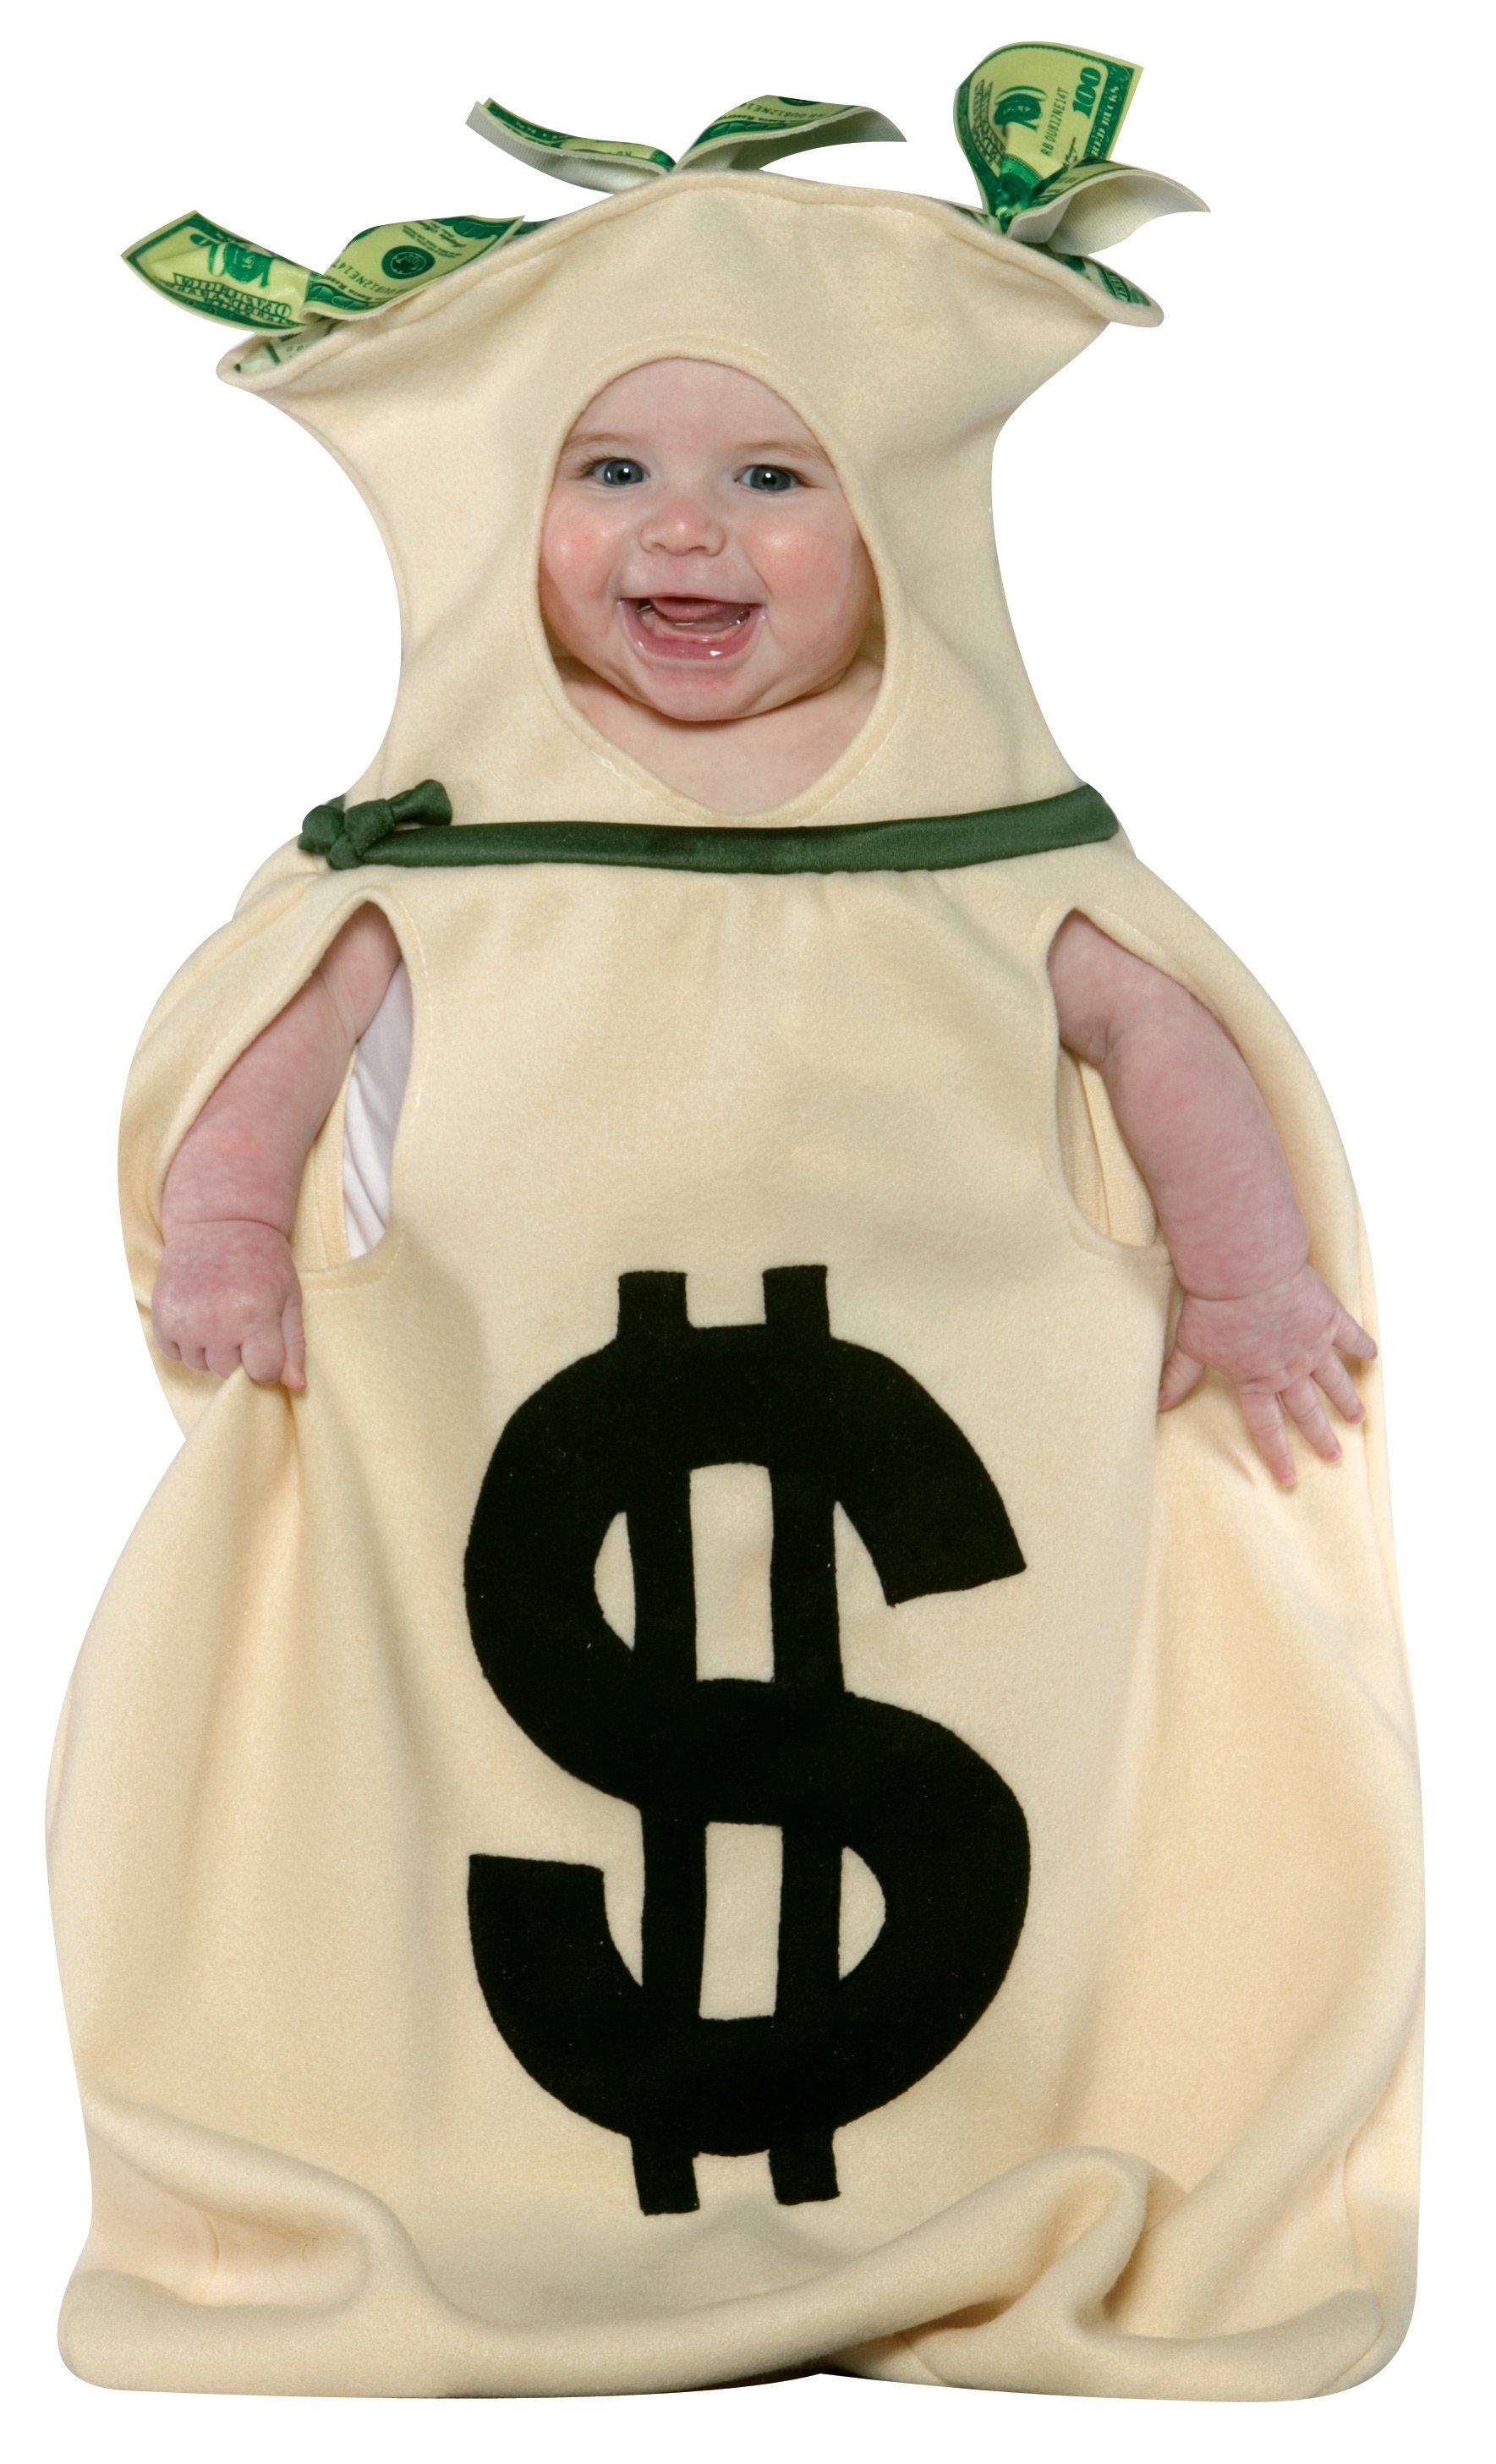 abs-it-baby-money